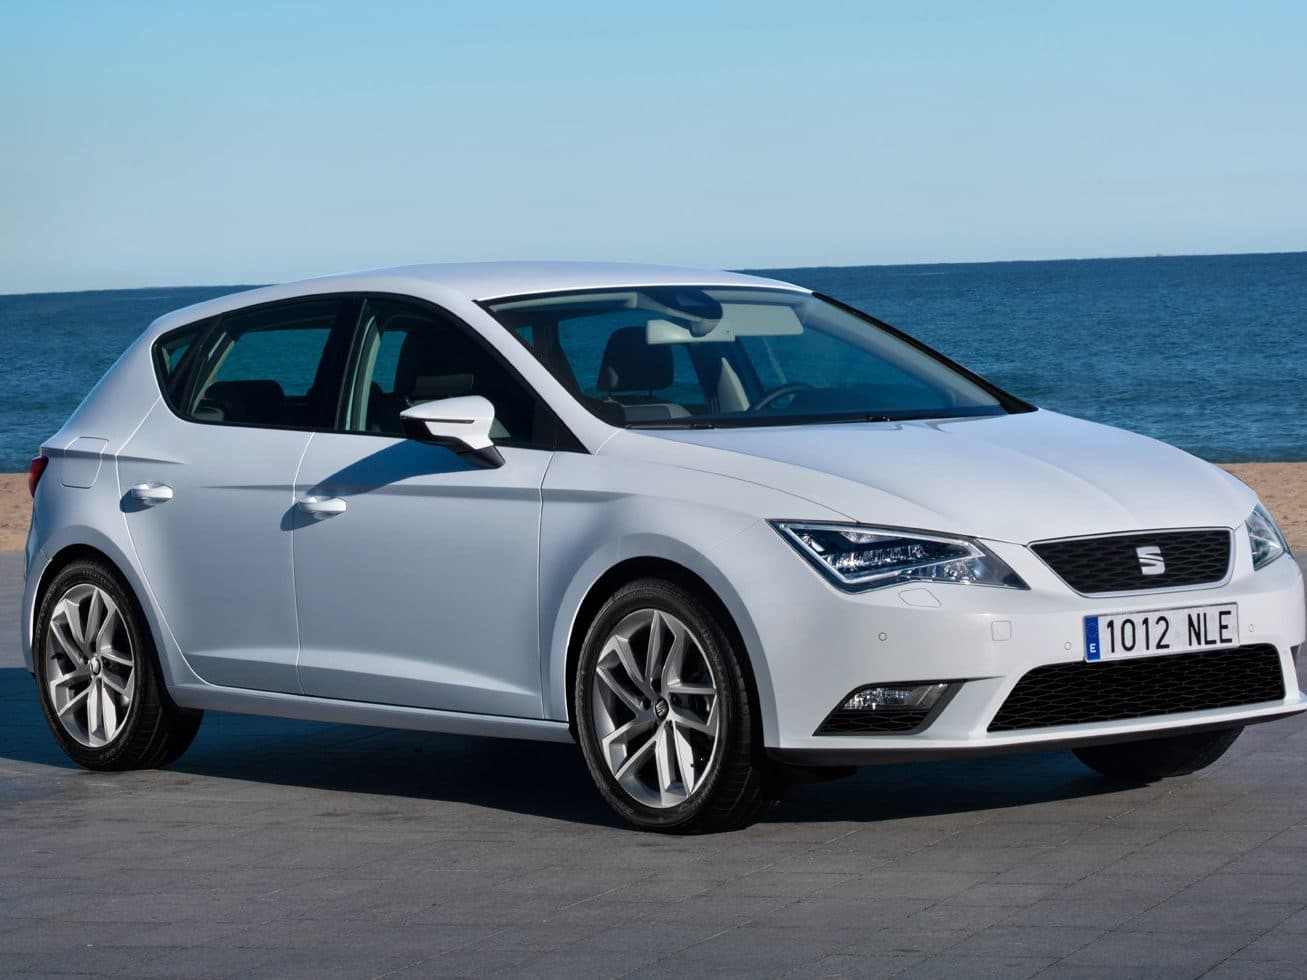 Seat Leon Hatchback 1.5TSI 130PS FR Manual 5dr